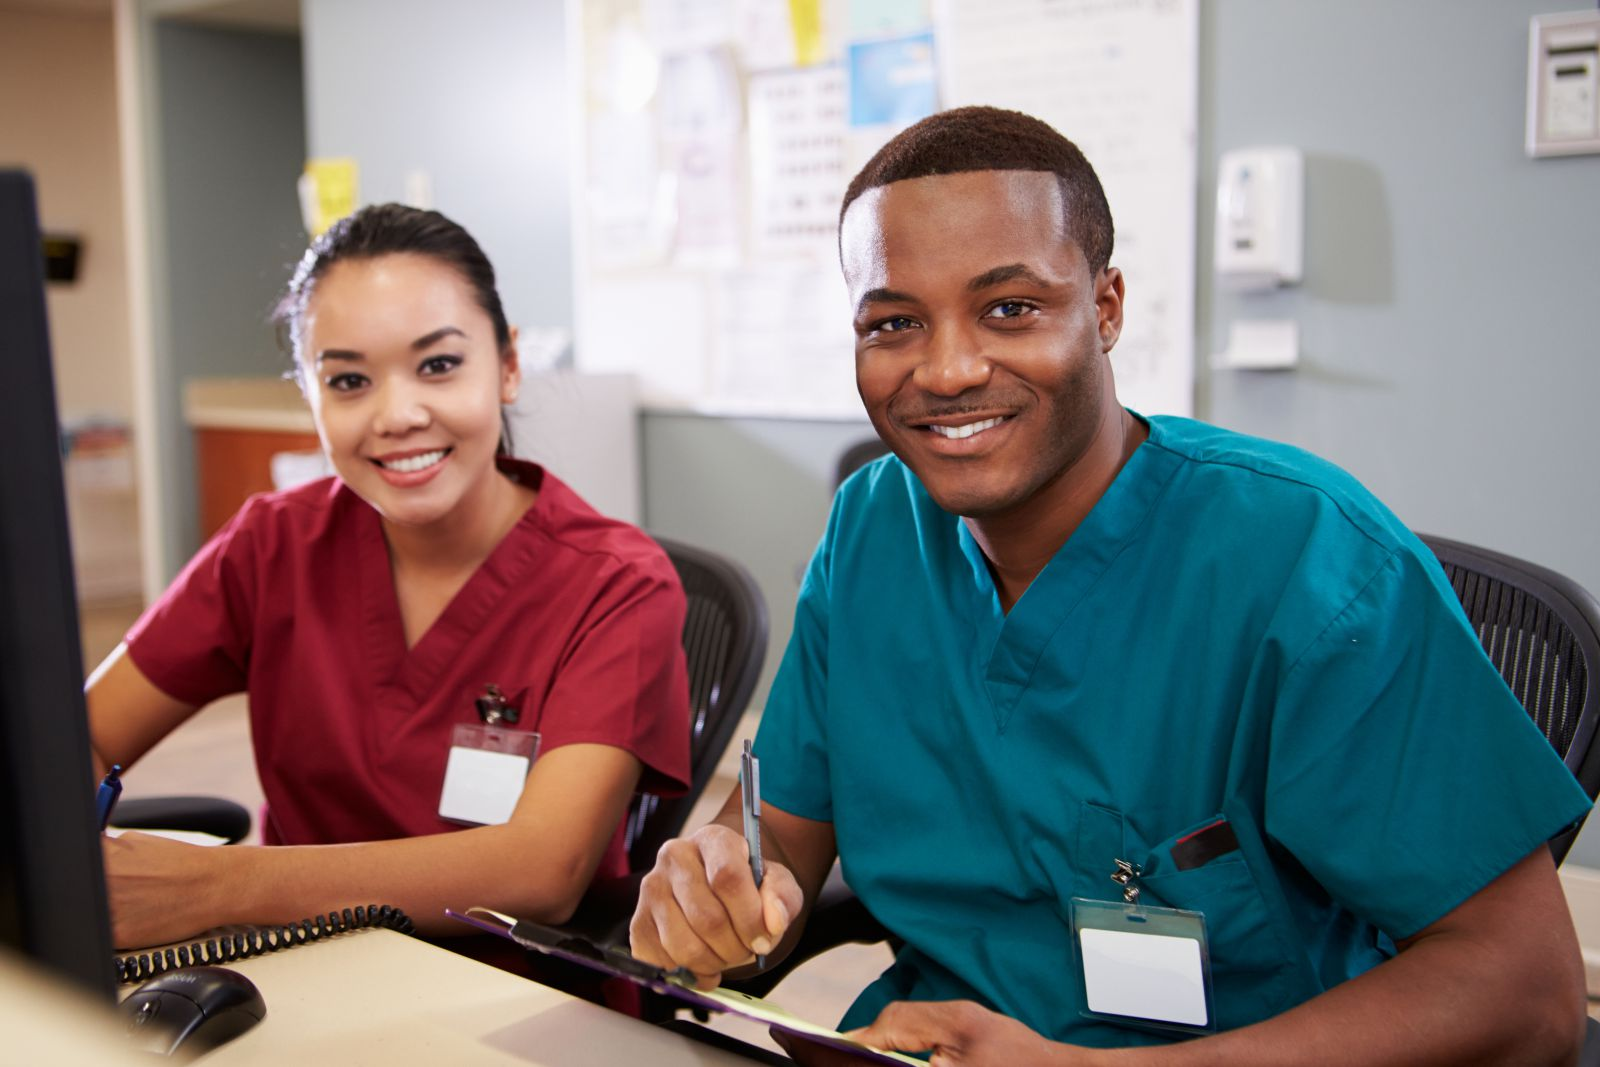 male and female nurse sit at desk